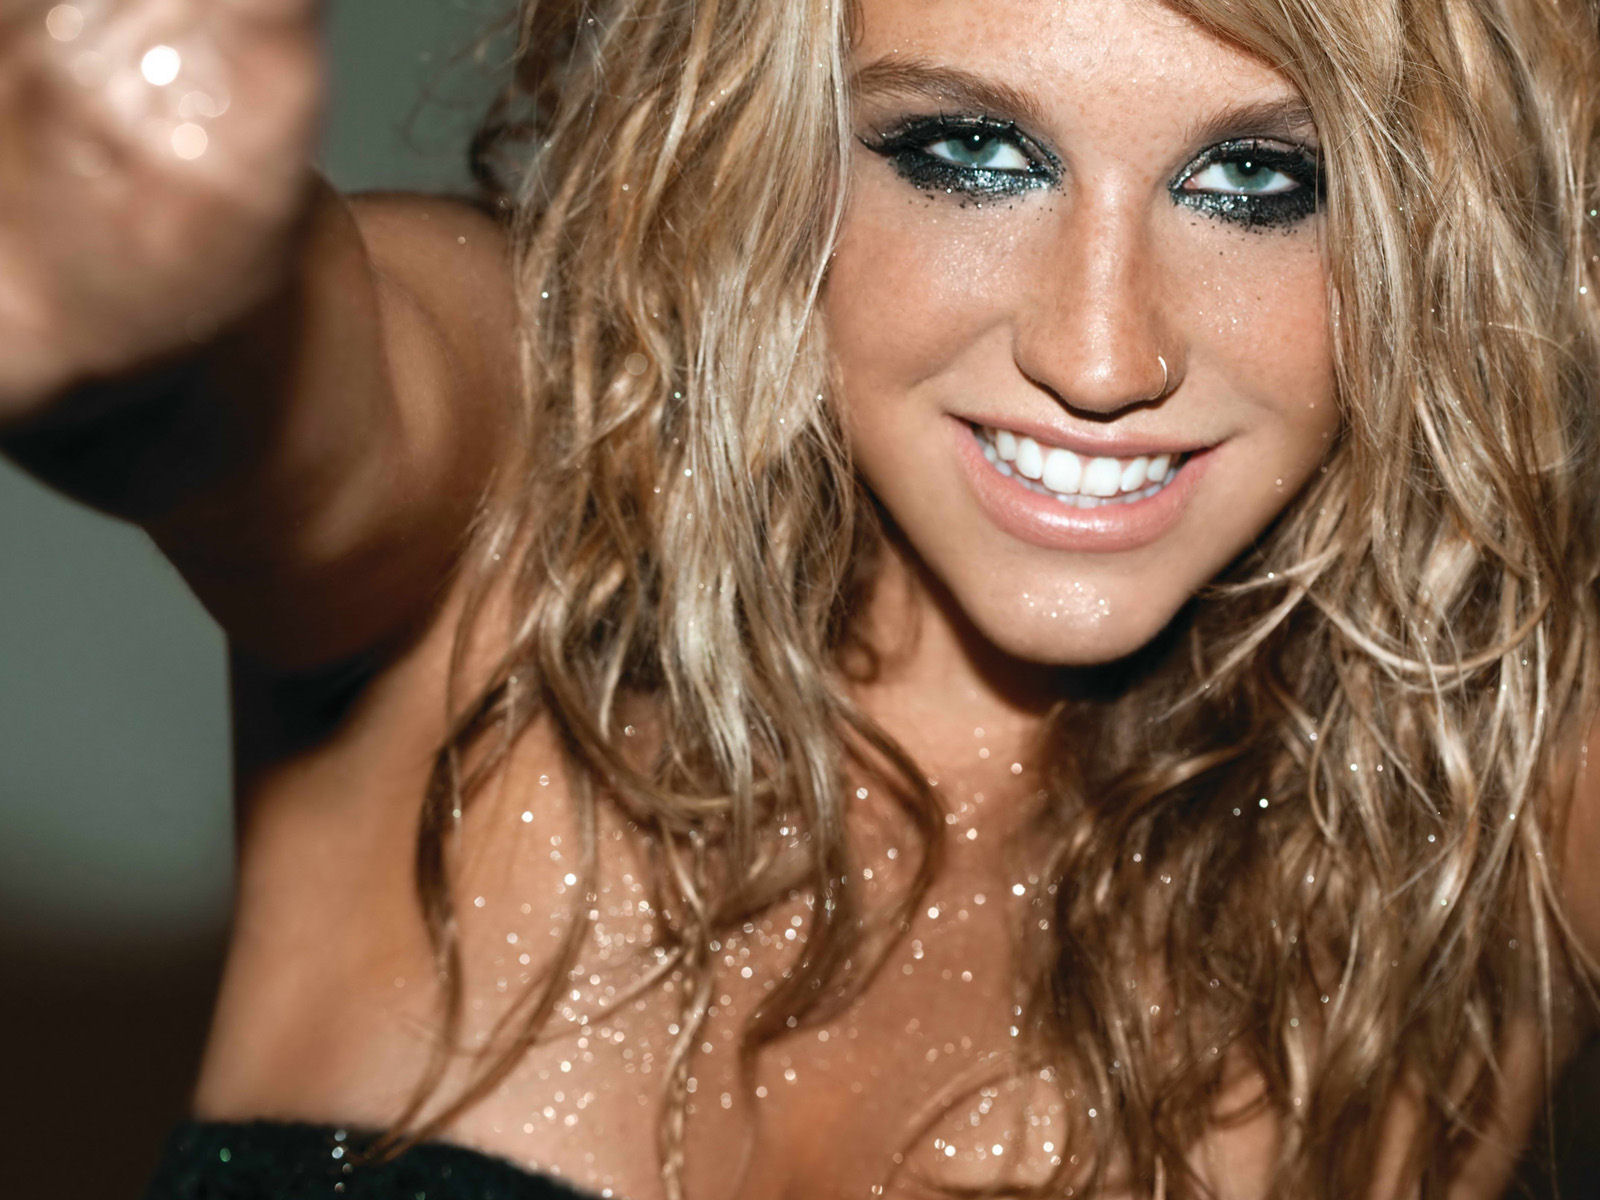 Wallpaper Kesha Smile Sexy Wallpaper 1600 x 1200   Desktop 1600x1200